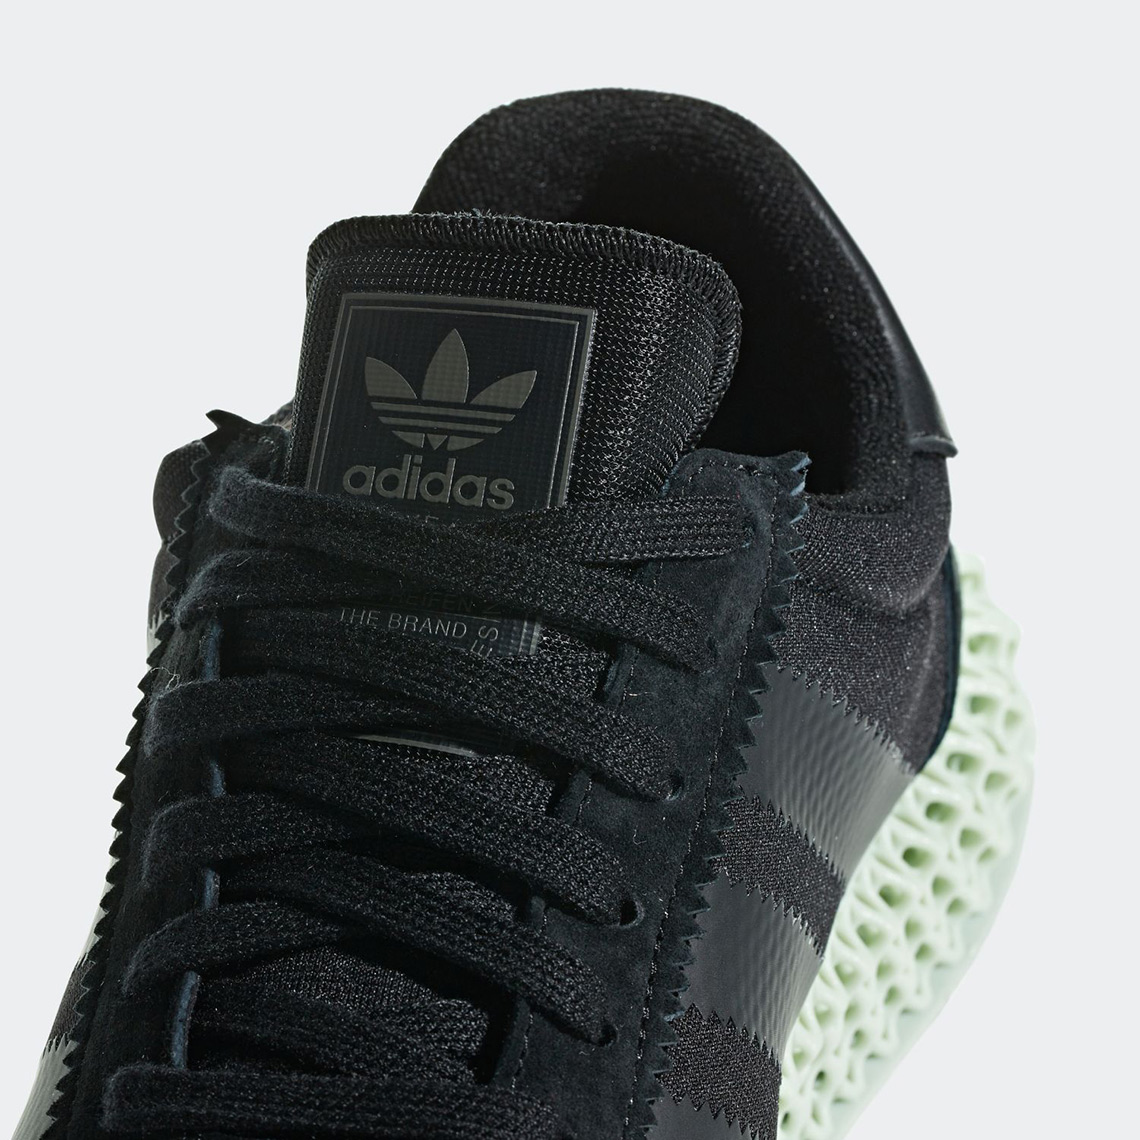 best service 8082a 9491c adidas Futurecraft 4D-5923. Release Date December, 2018 350. Style Code  EE3657. show comments